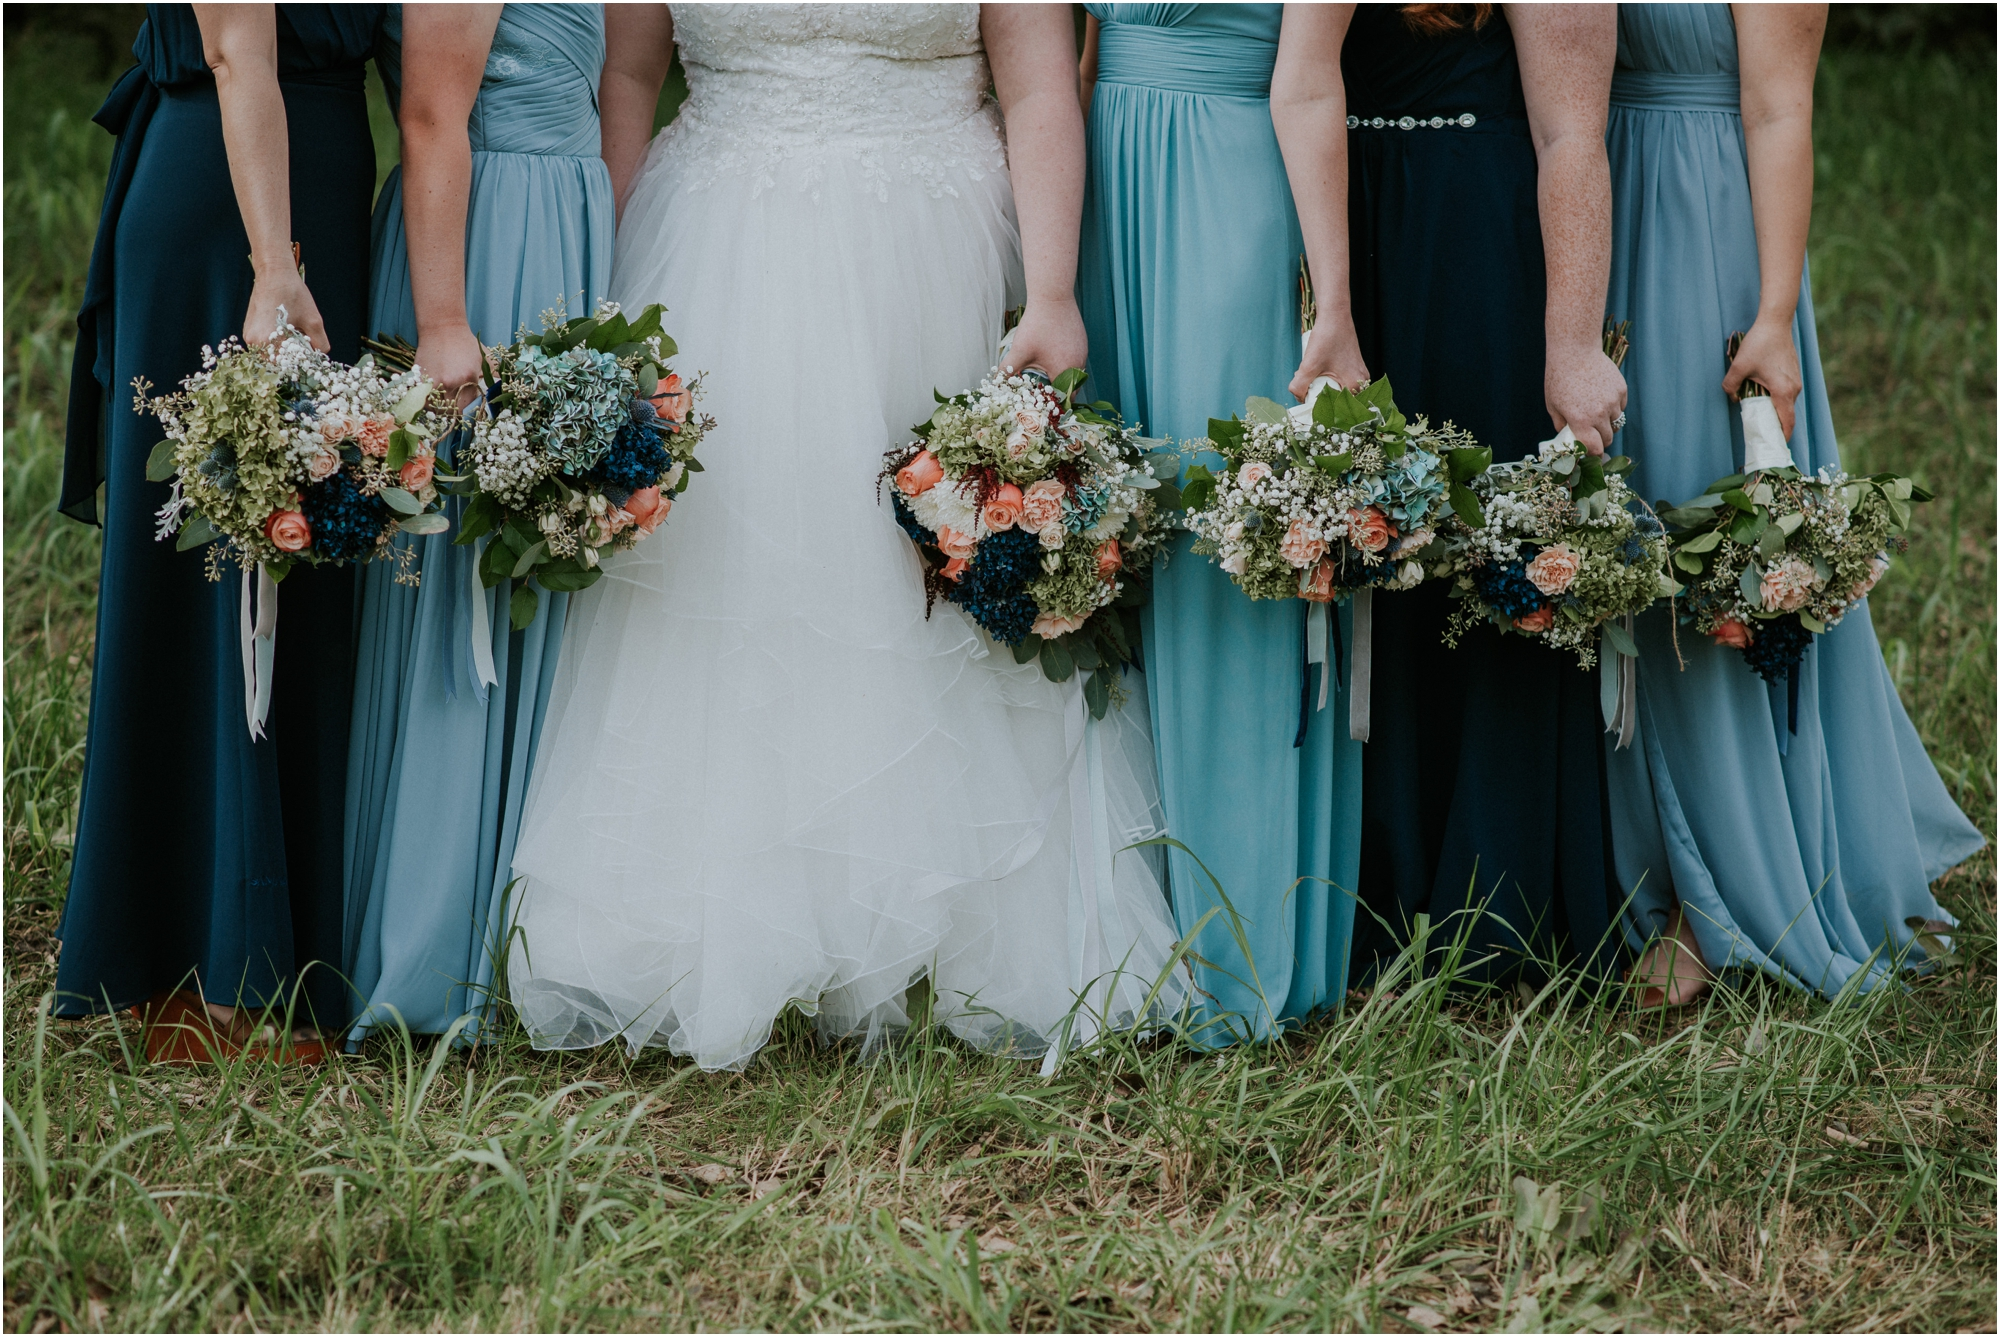 caryville-robbins-middle-tennessee-intimate-cozy-fall-navy-rustic-backyard-wedding_0058.jpg